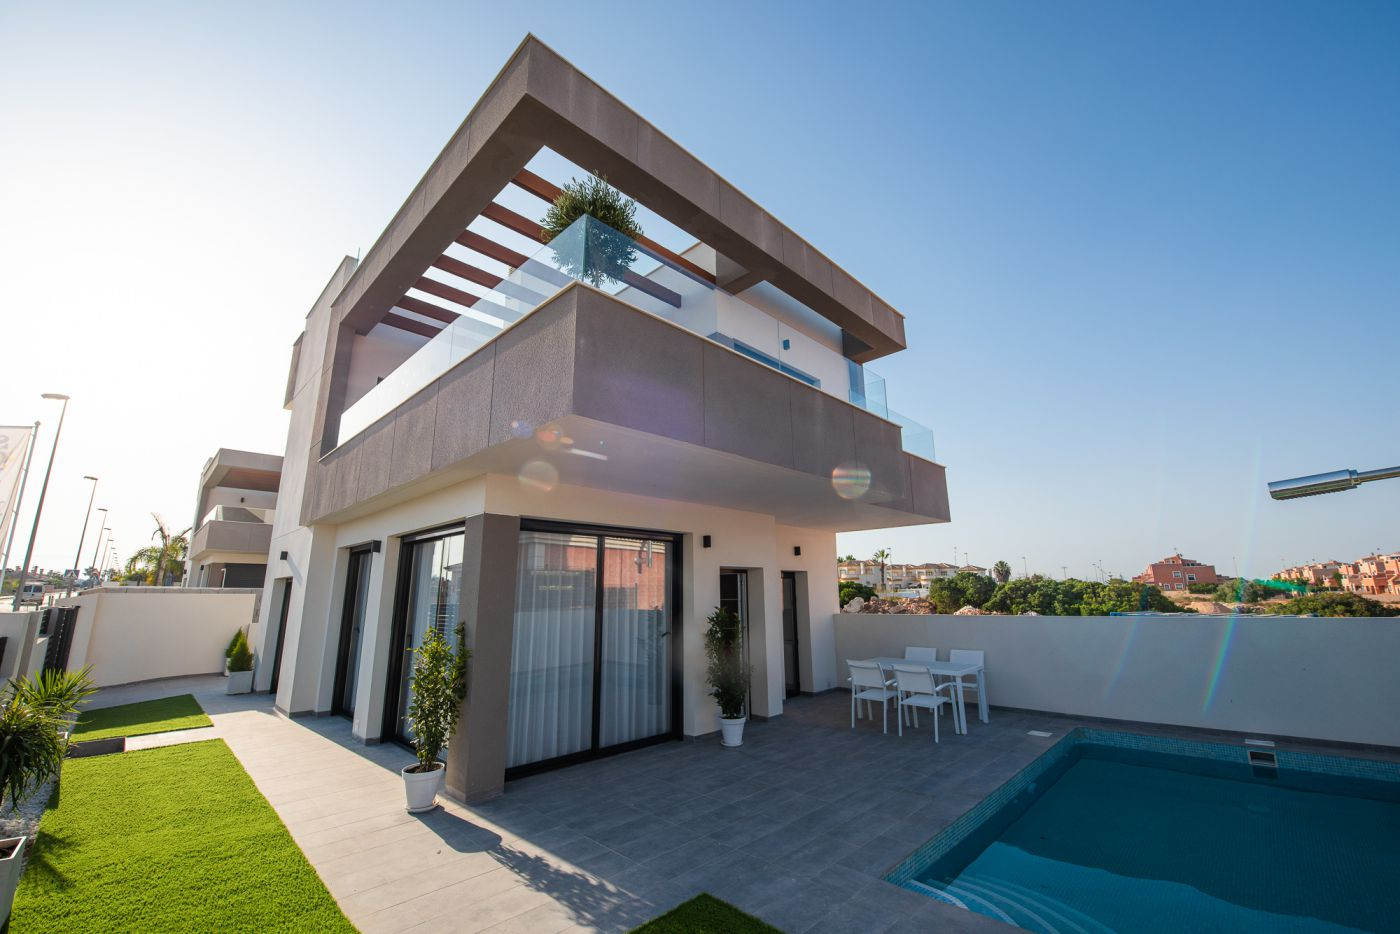 Villas with 3 bedrooms, solarium, garden, garage and swimming pool in Montesinos